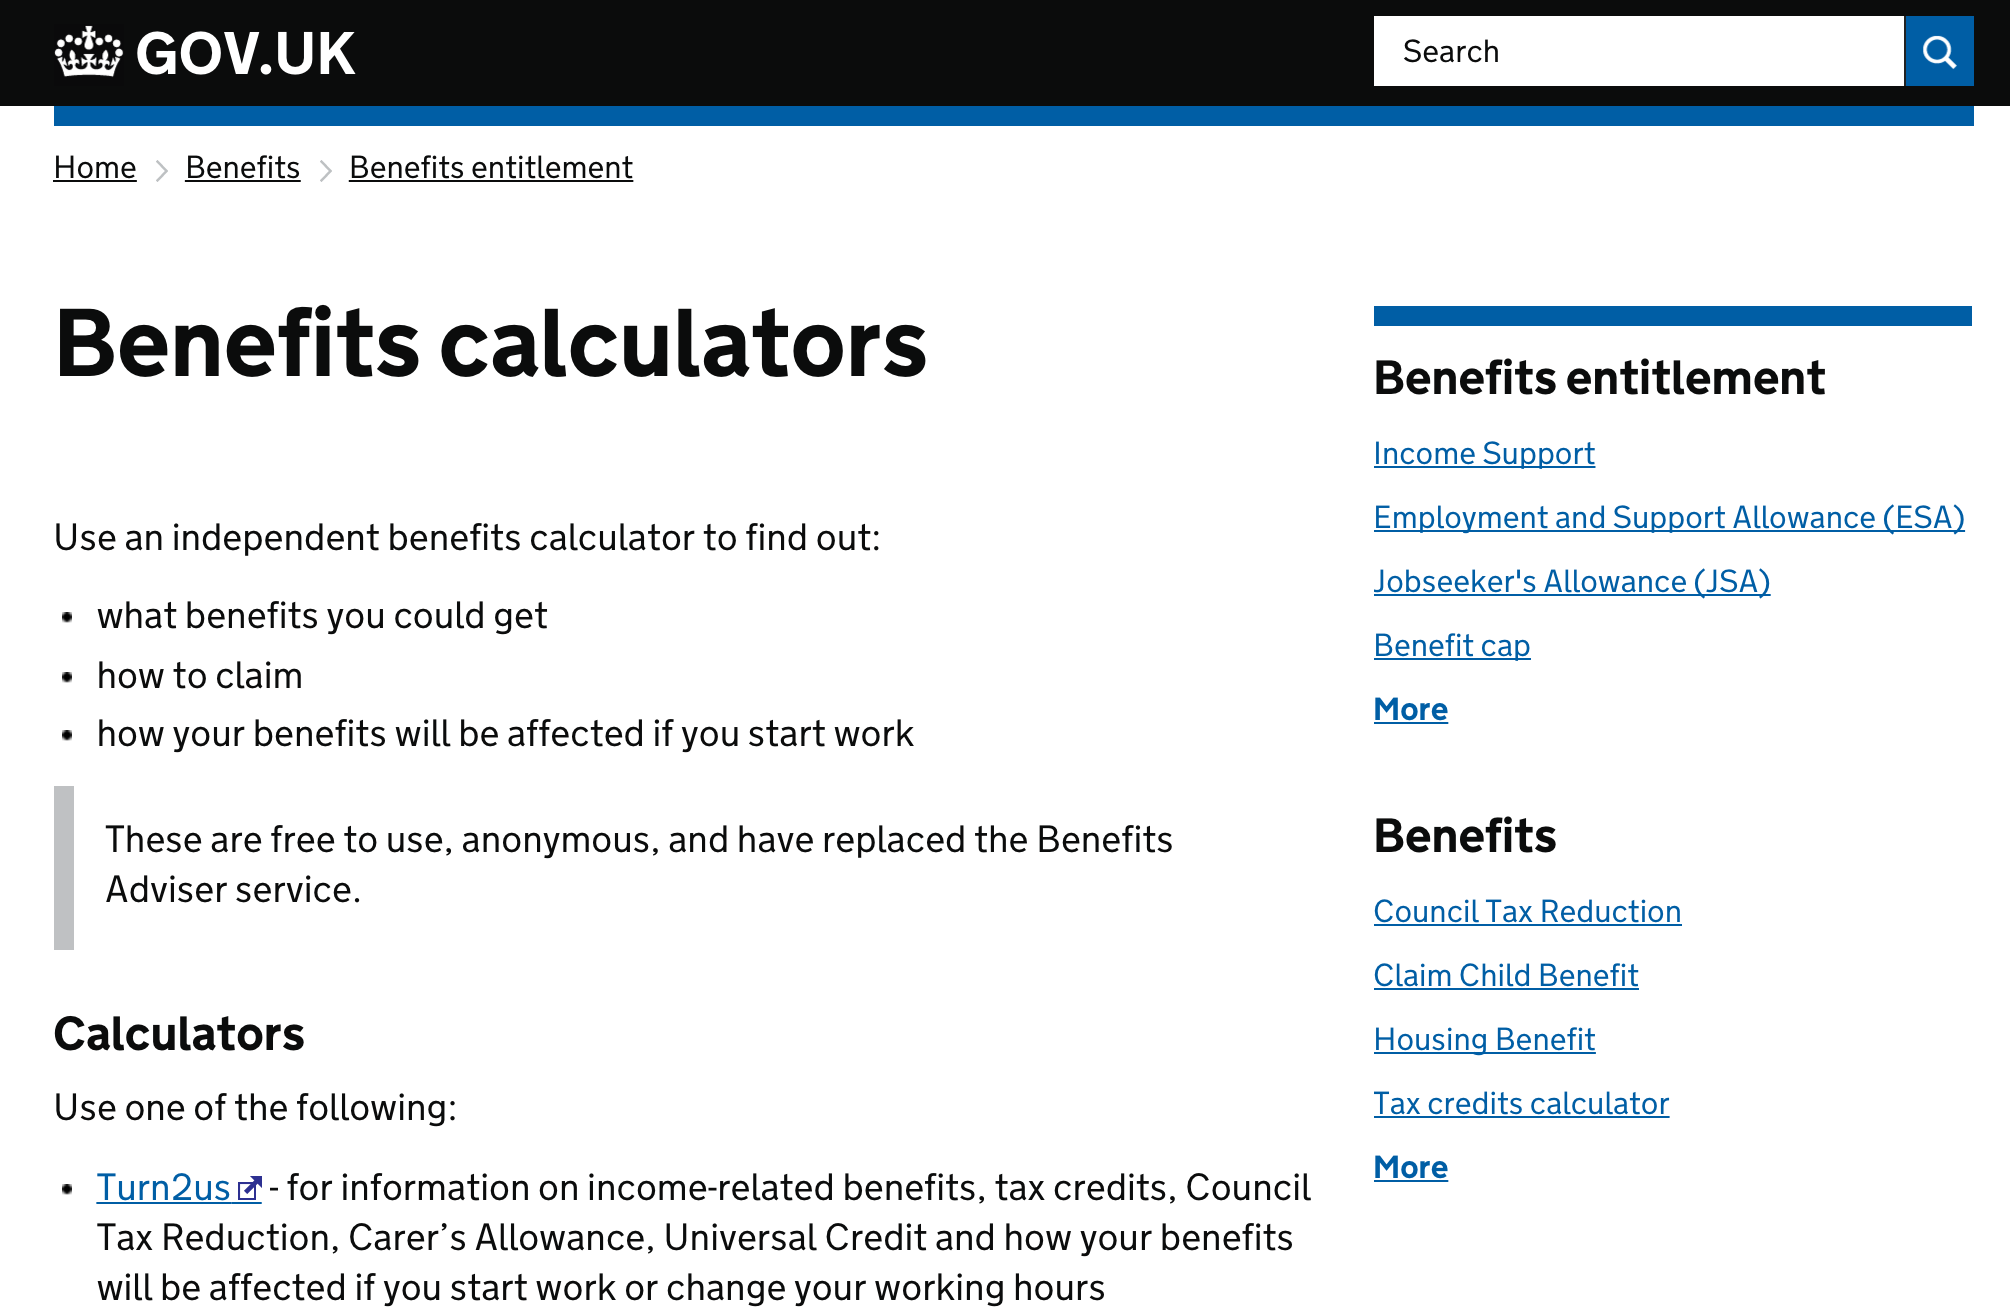 A screenshot of the Benefits Calculator page.